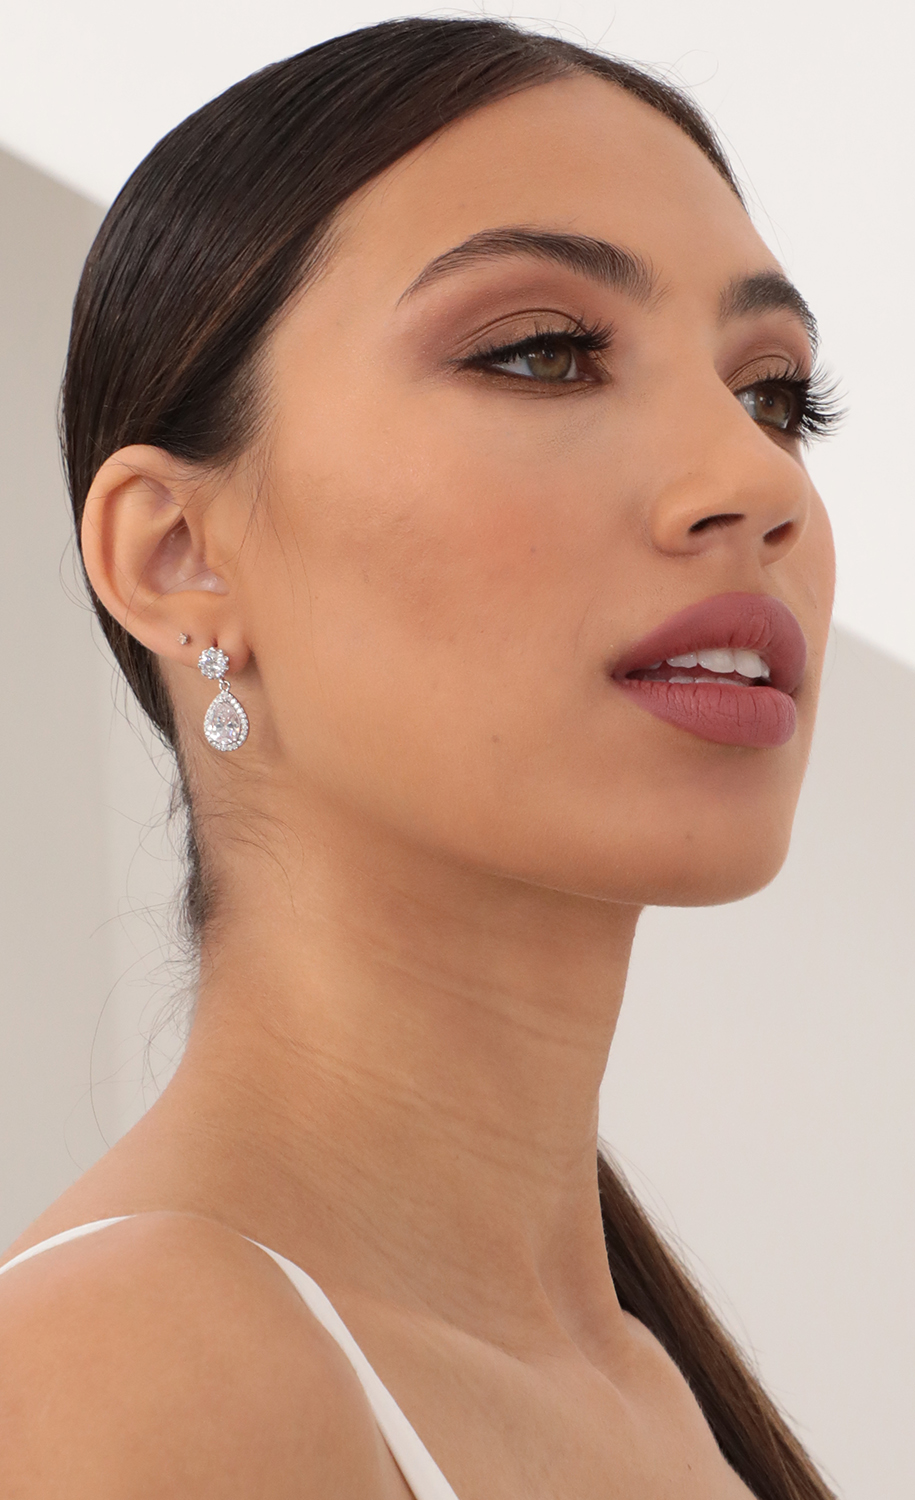 Dainty Crystal Teardrop Earrings in Silver